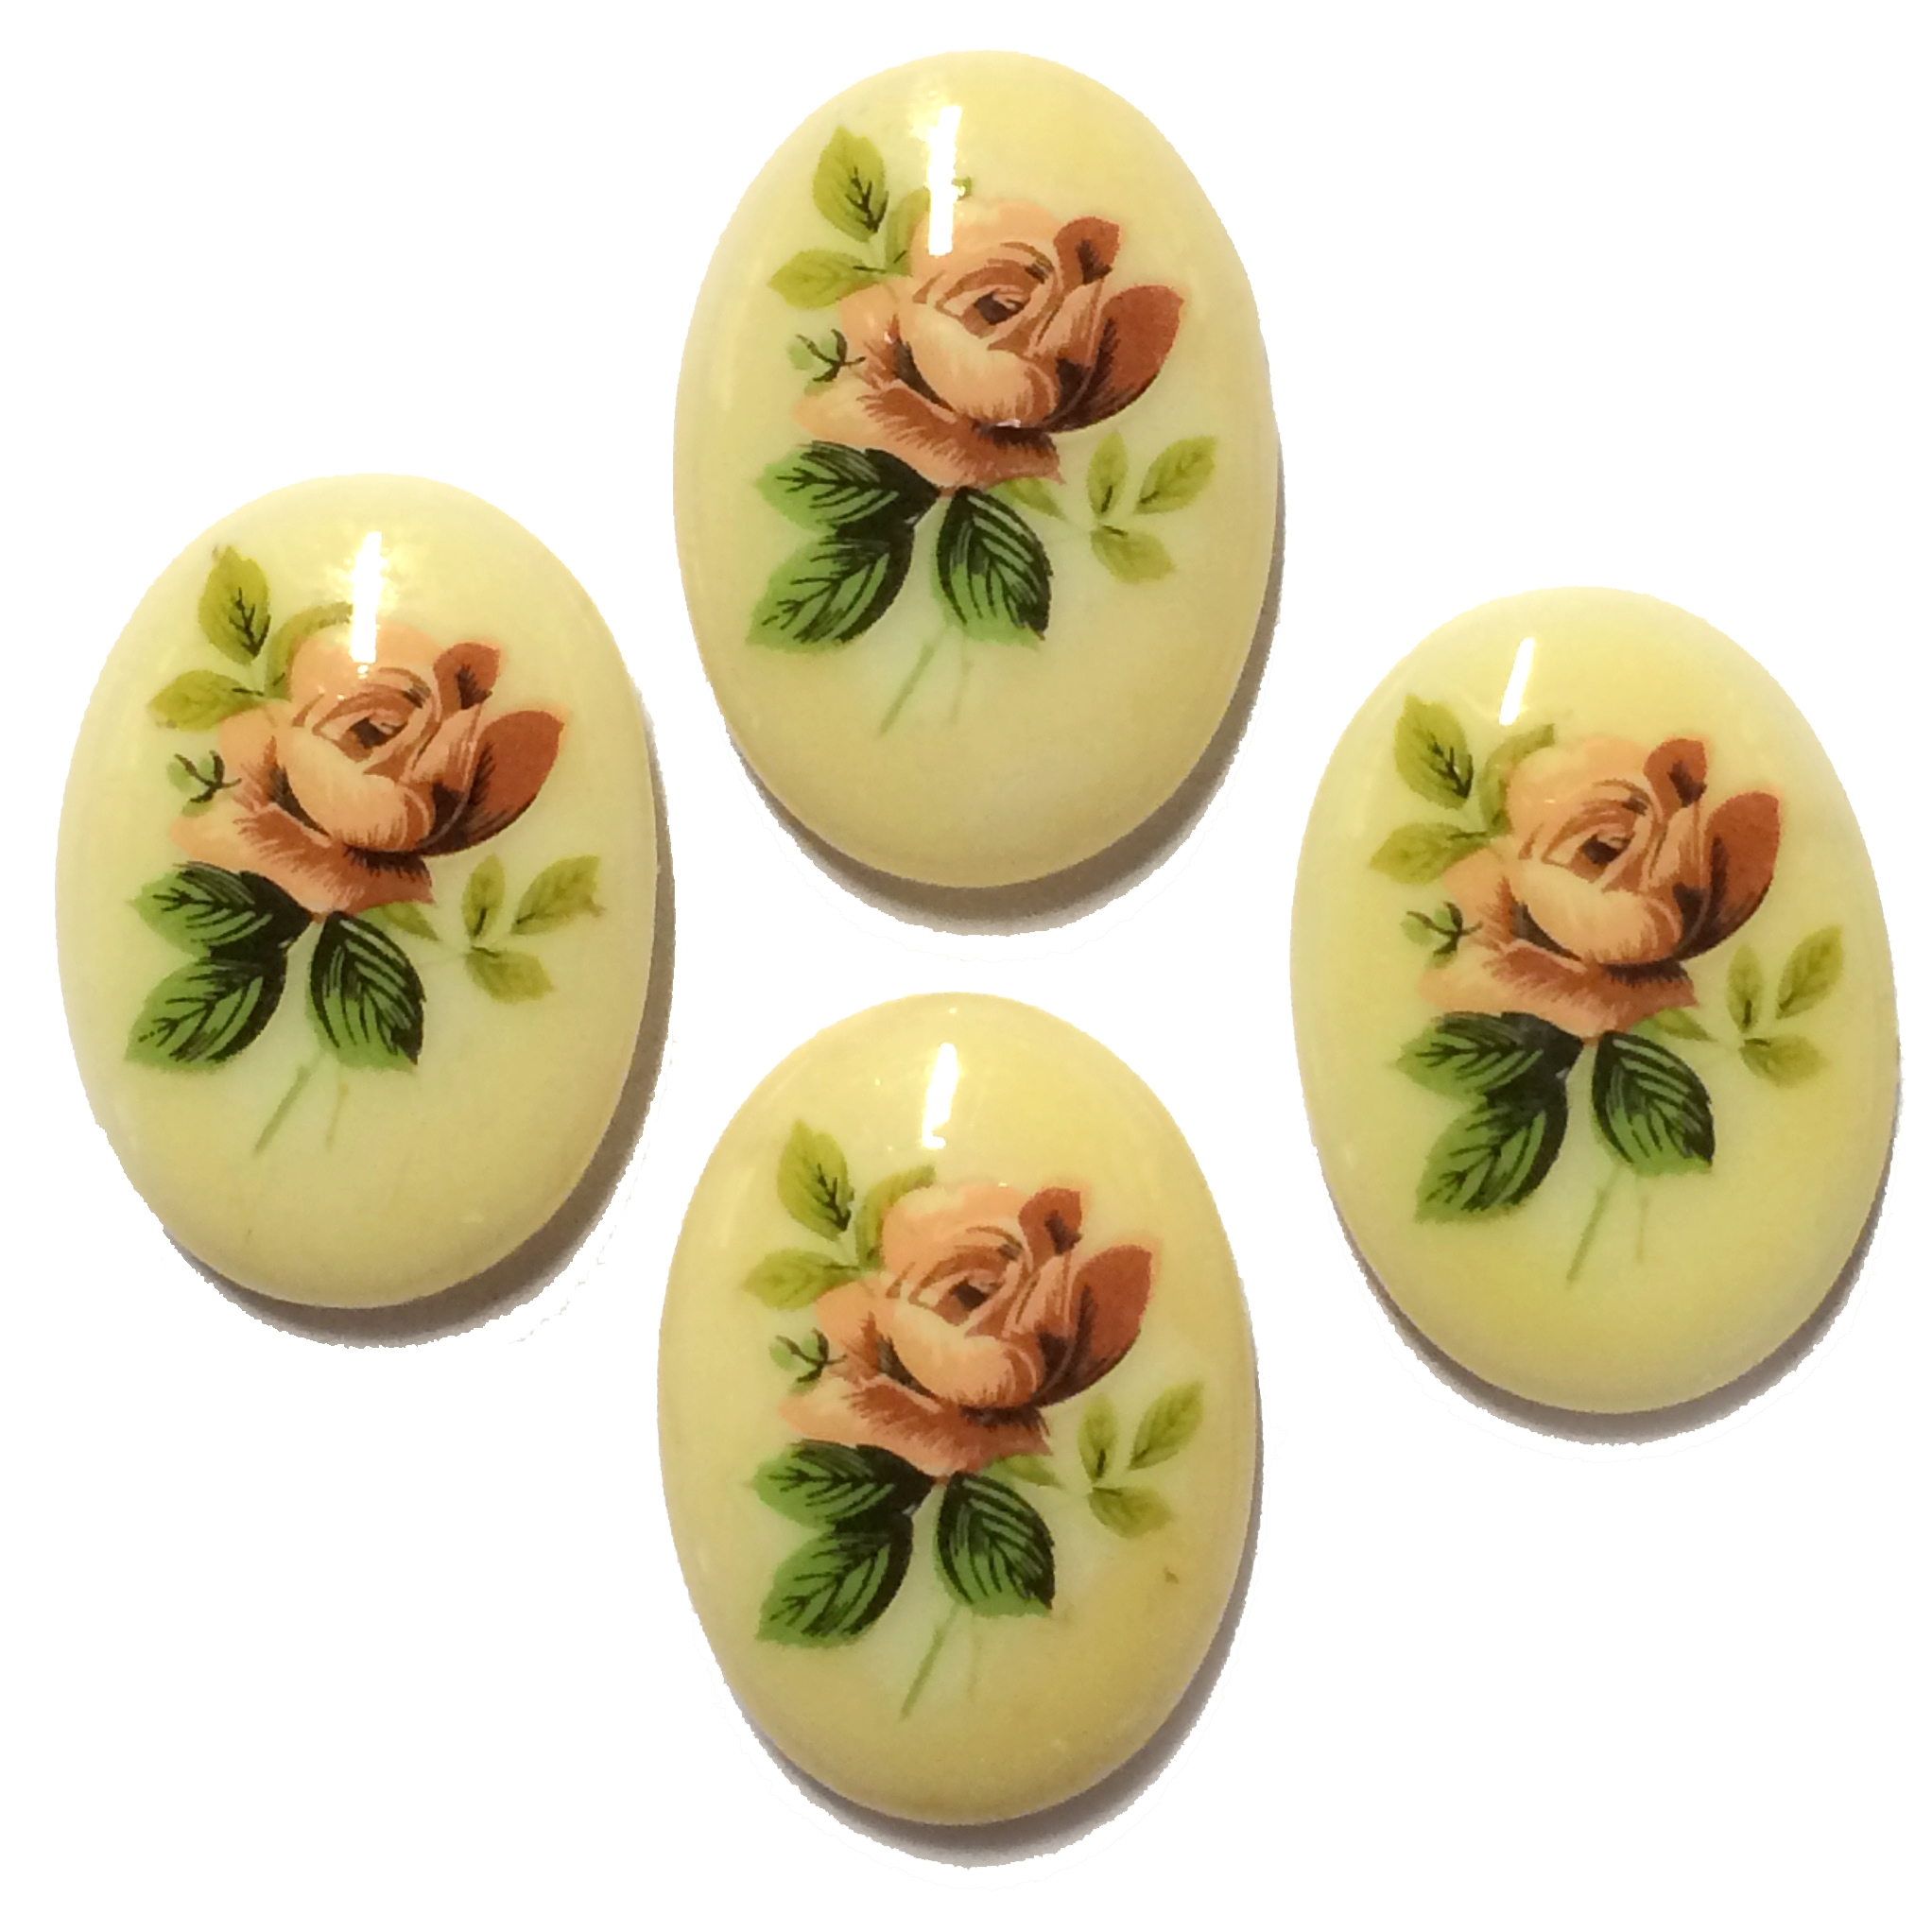 Vintage Desert Rose Cameos, German Decal, 03869, vintage jewelry supplies, jewelry making supplies, floral cameos, peachy roses, flat back cameos, decal cameos, rose decals